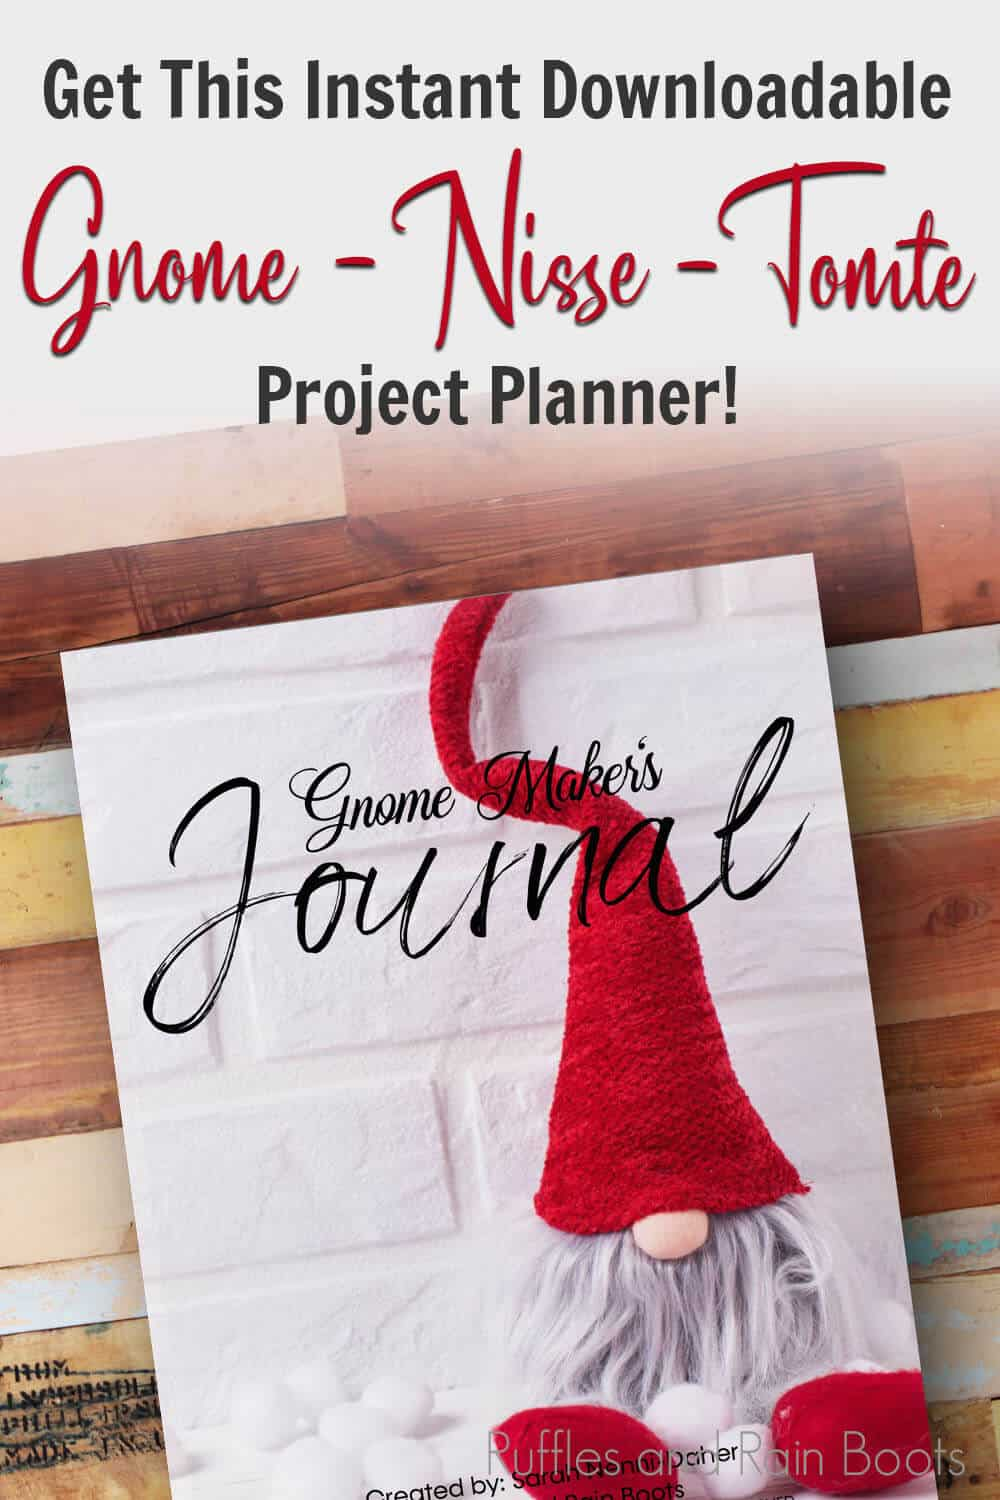 gnome business planner with text which reads get this instant downloadable gnome nisse tomte project planner